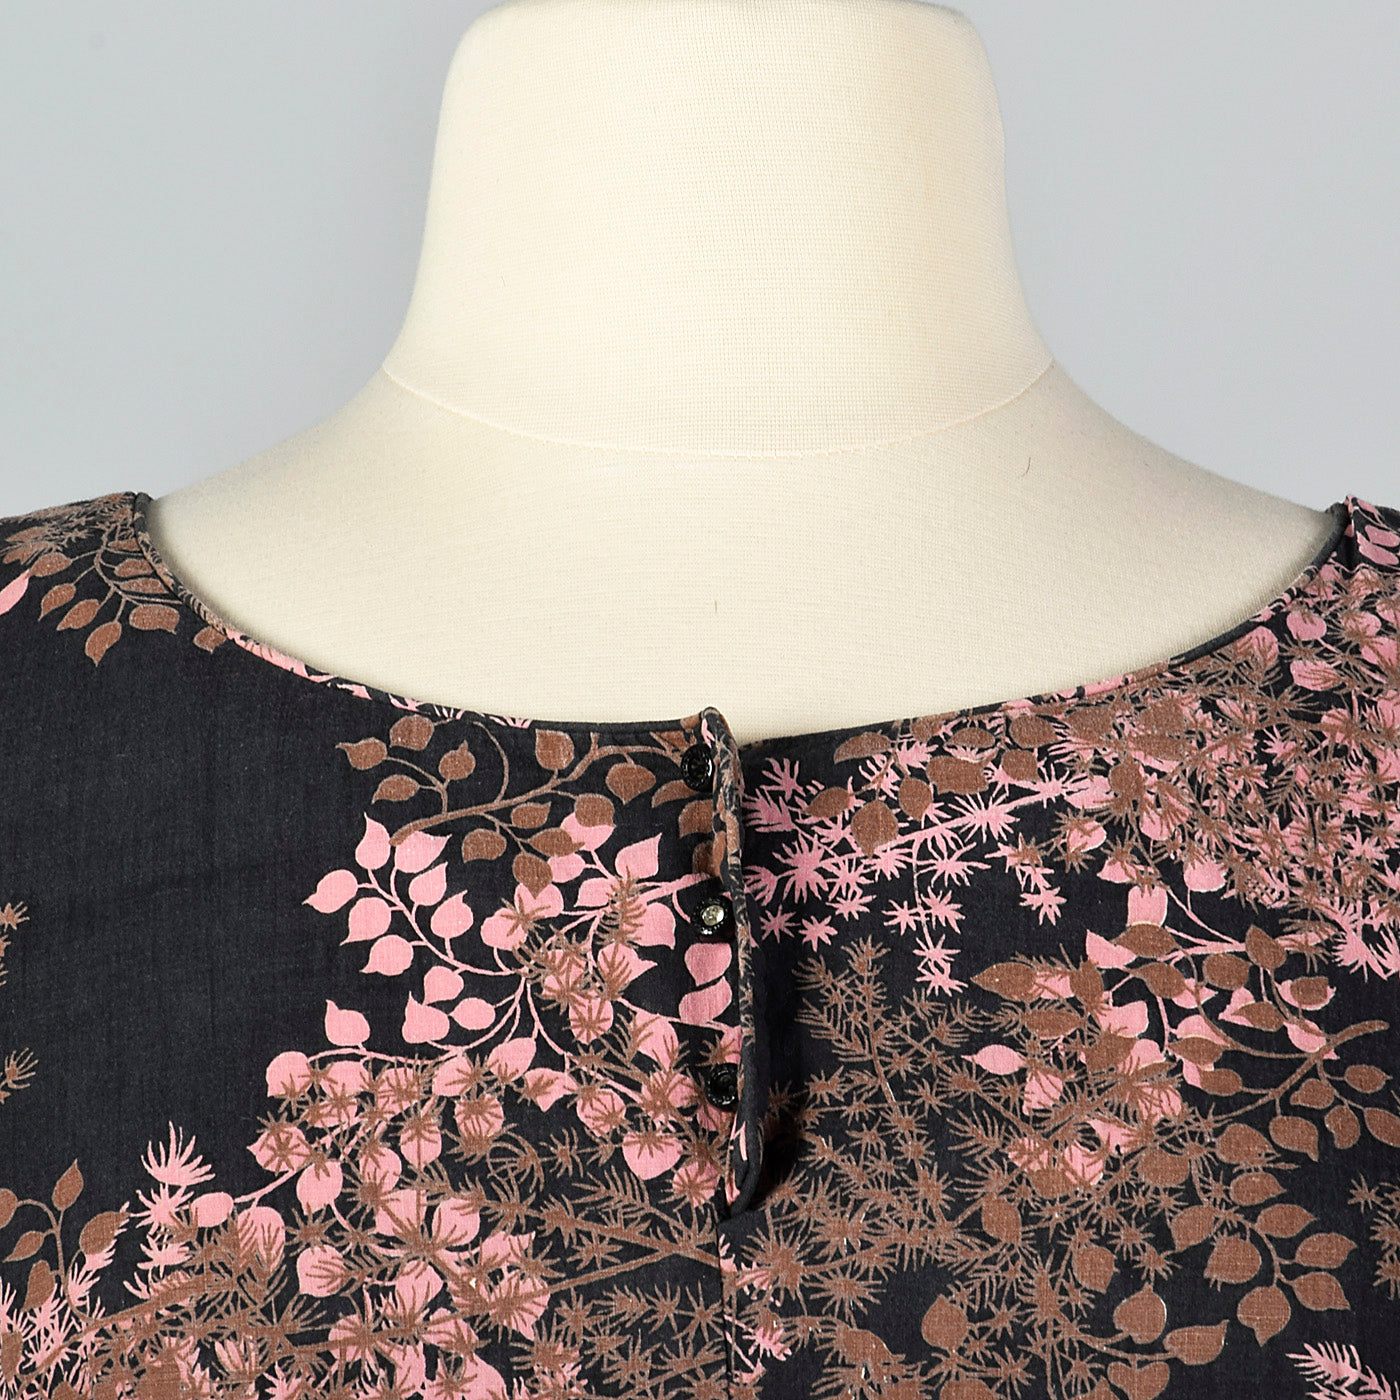 1950s Black and Pink Floral Dress with Drop Waist